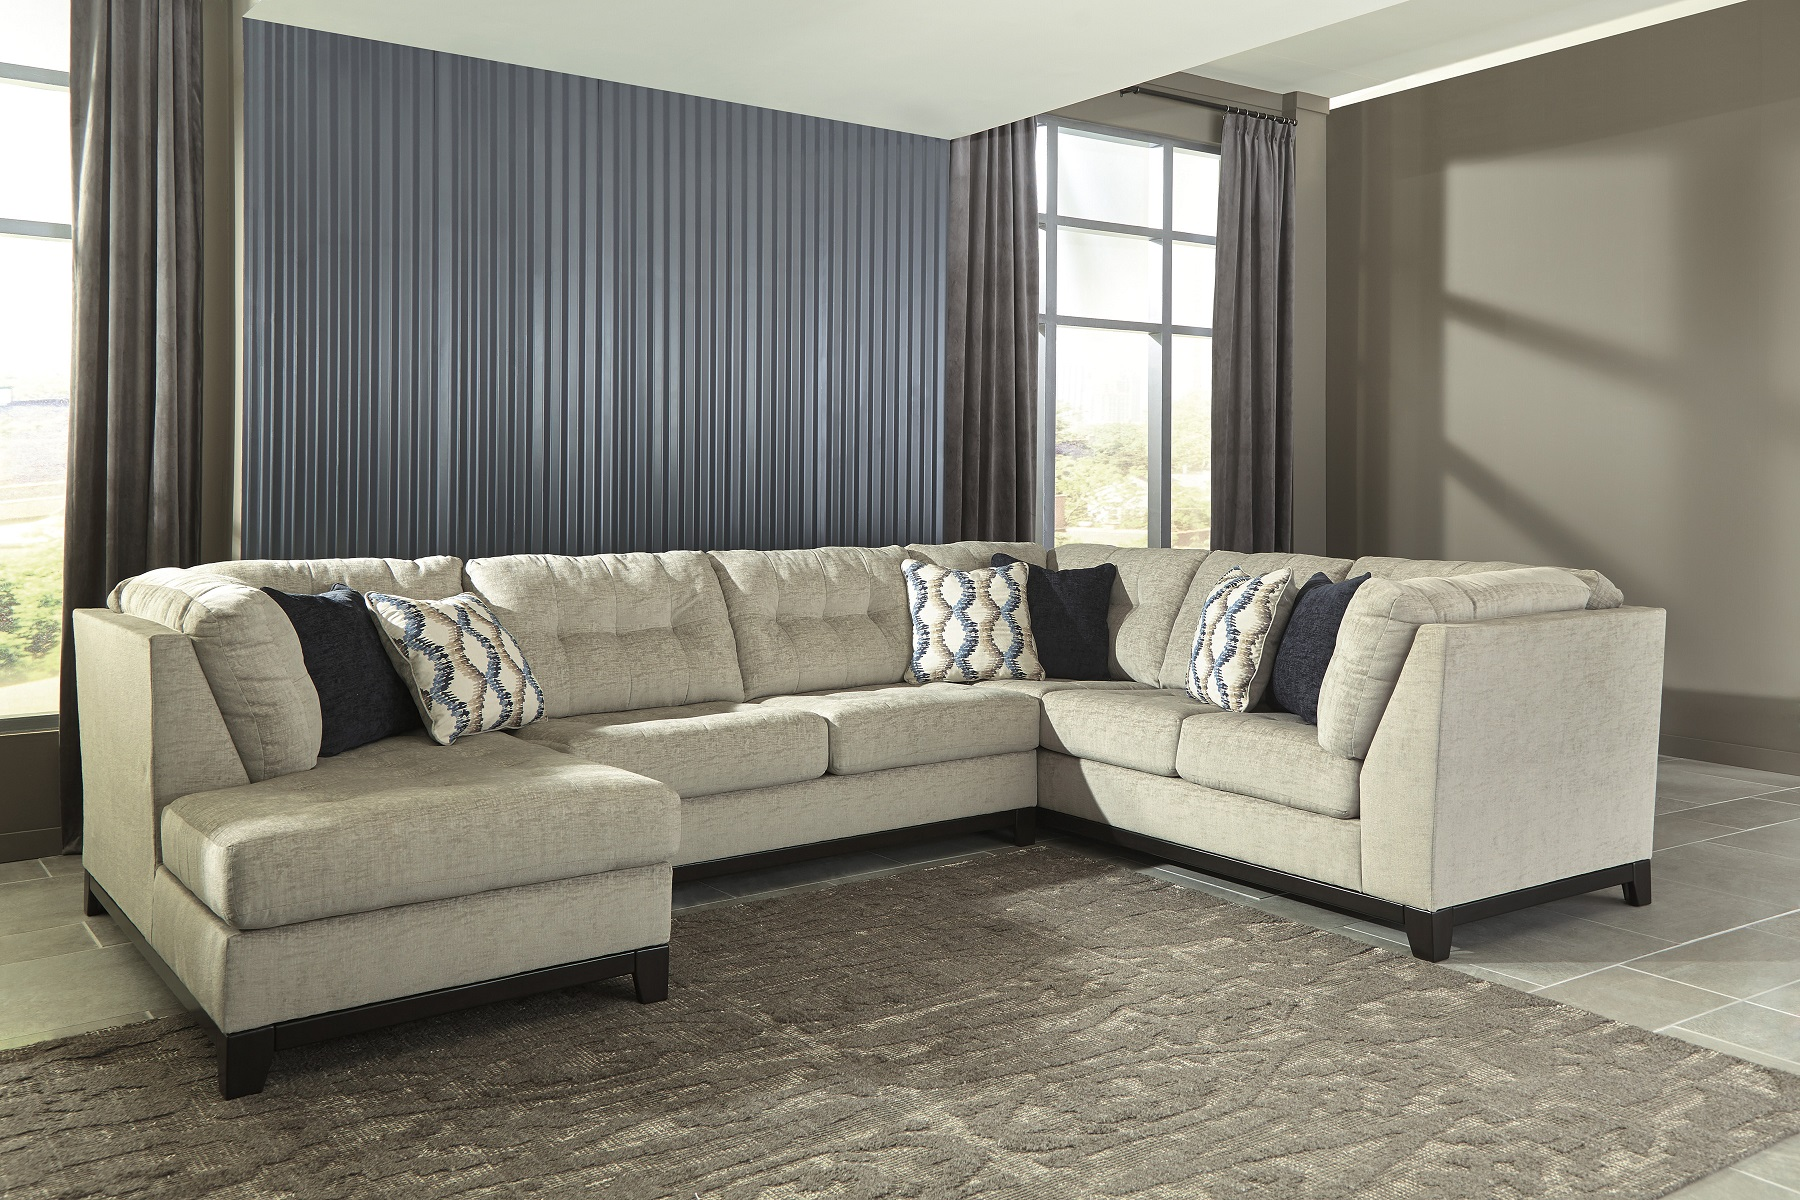 Beckendorf 15004 16 By Ashley Sectional Sofa